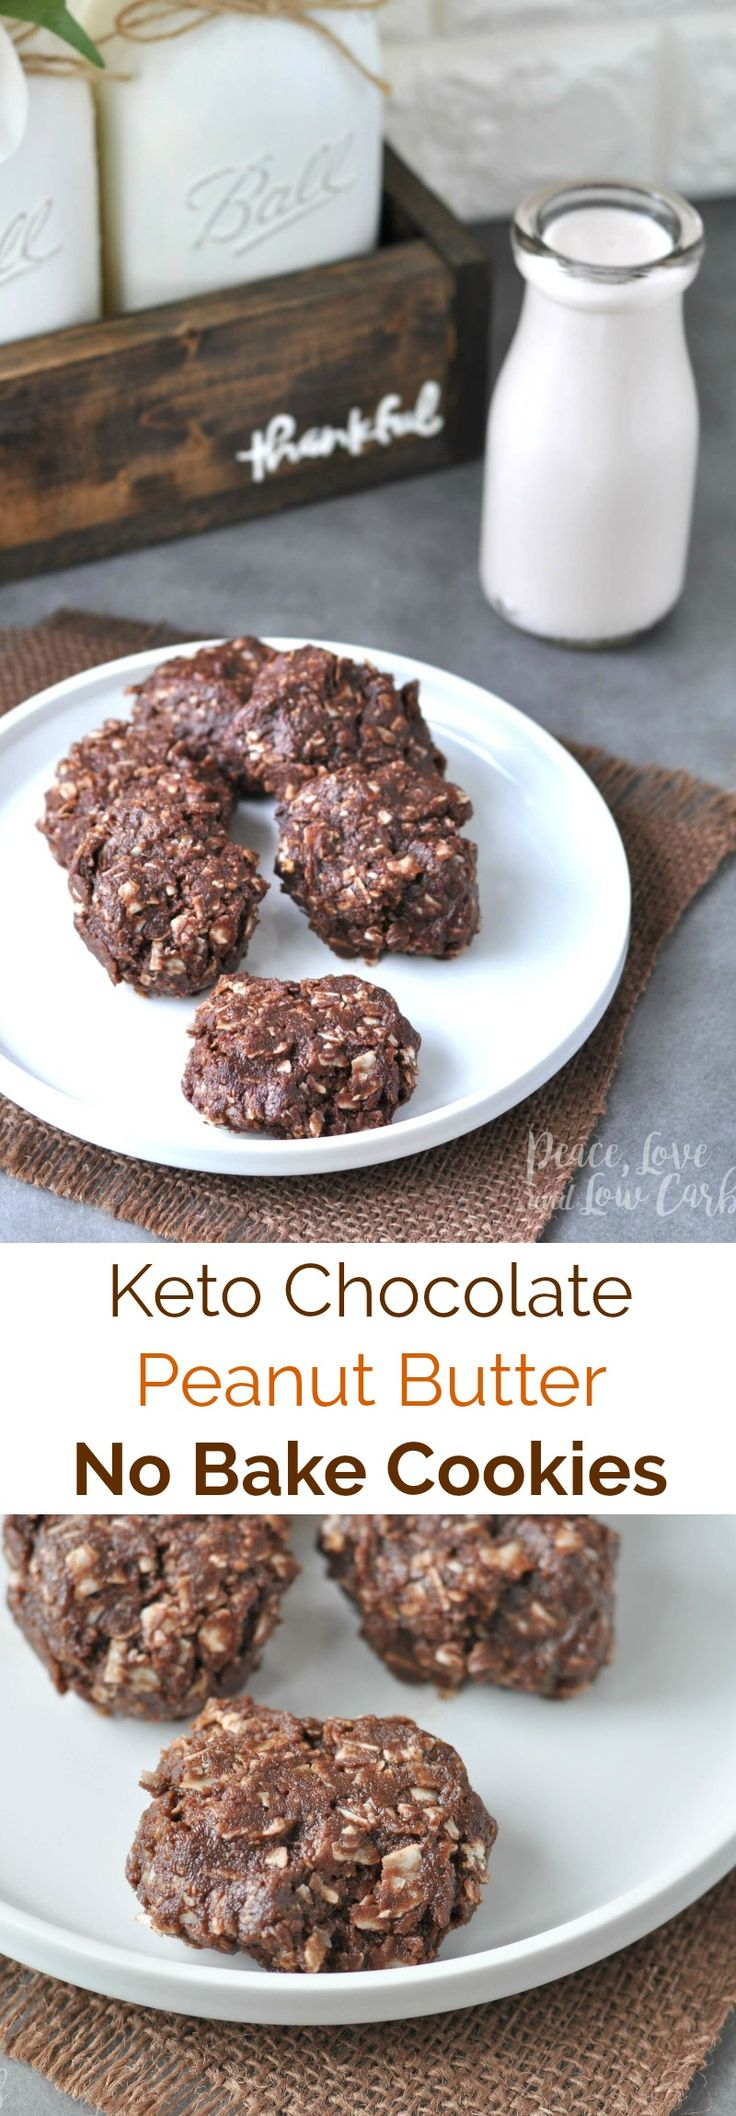 Chocolate Peanut Butter Keto No Bake Cookies | Peace Love and Low Carb via @PeaceLoveLoCarb